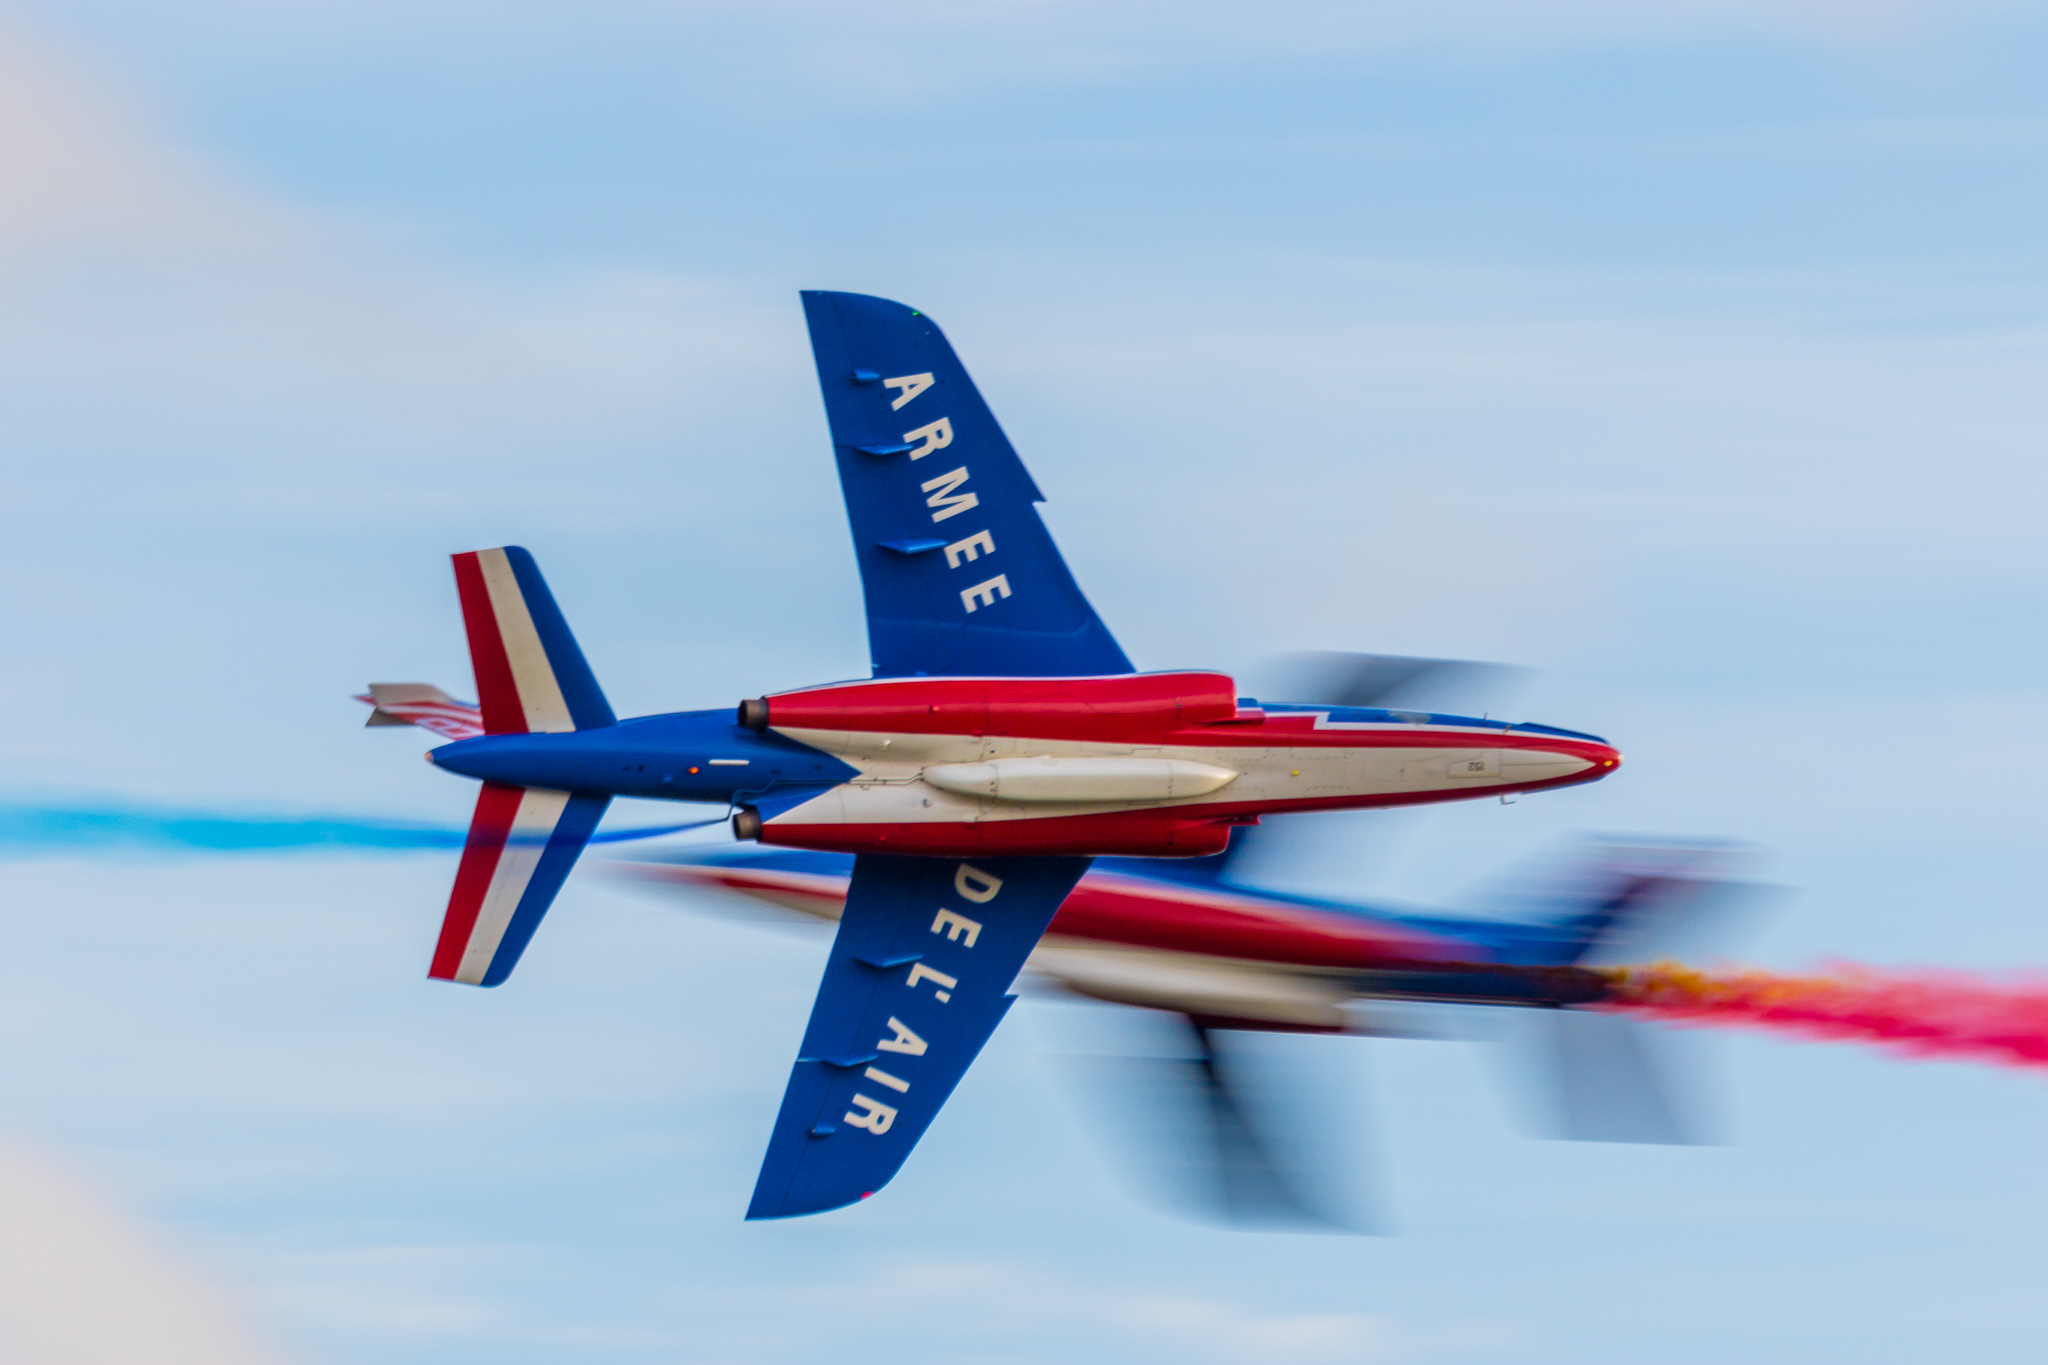 Patrouille de France at 2017 Sanicole Air Show